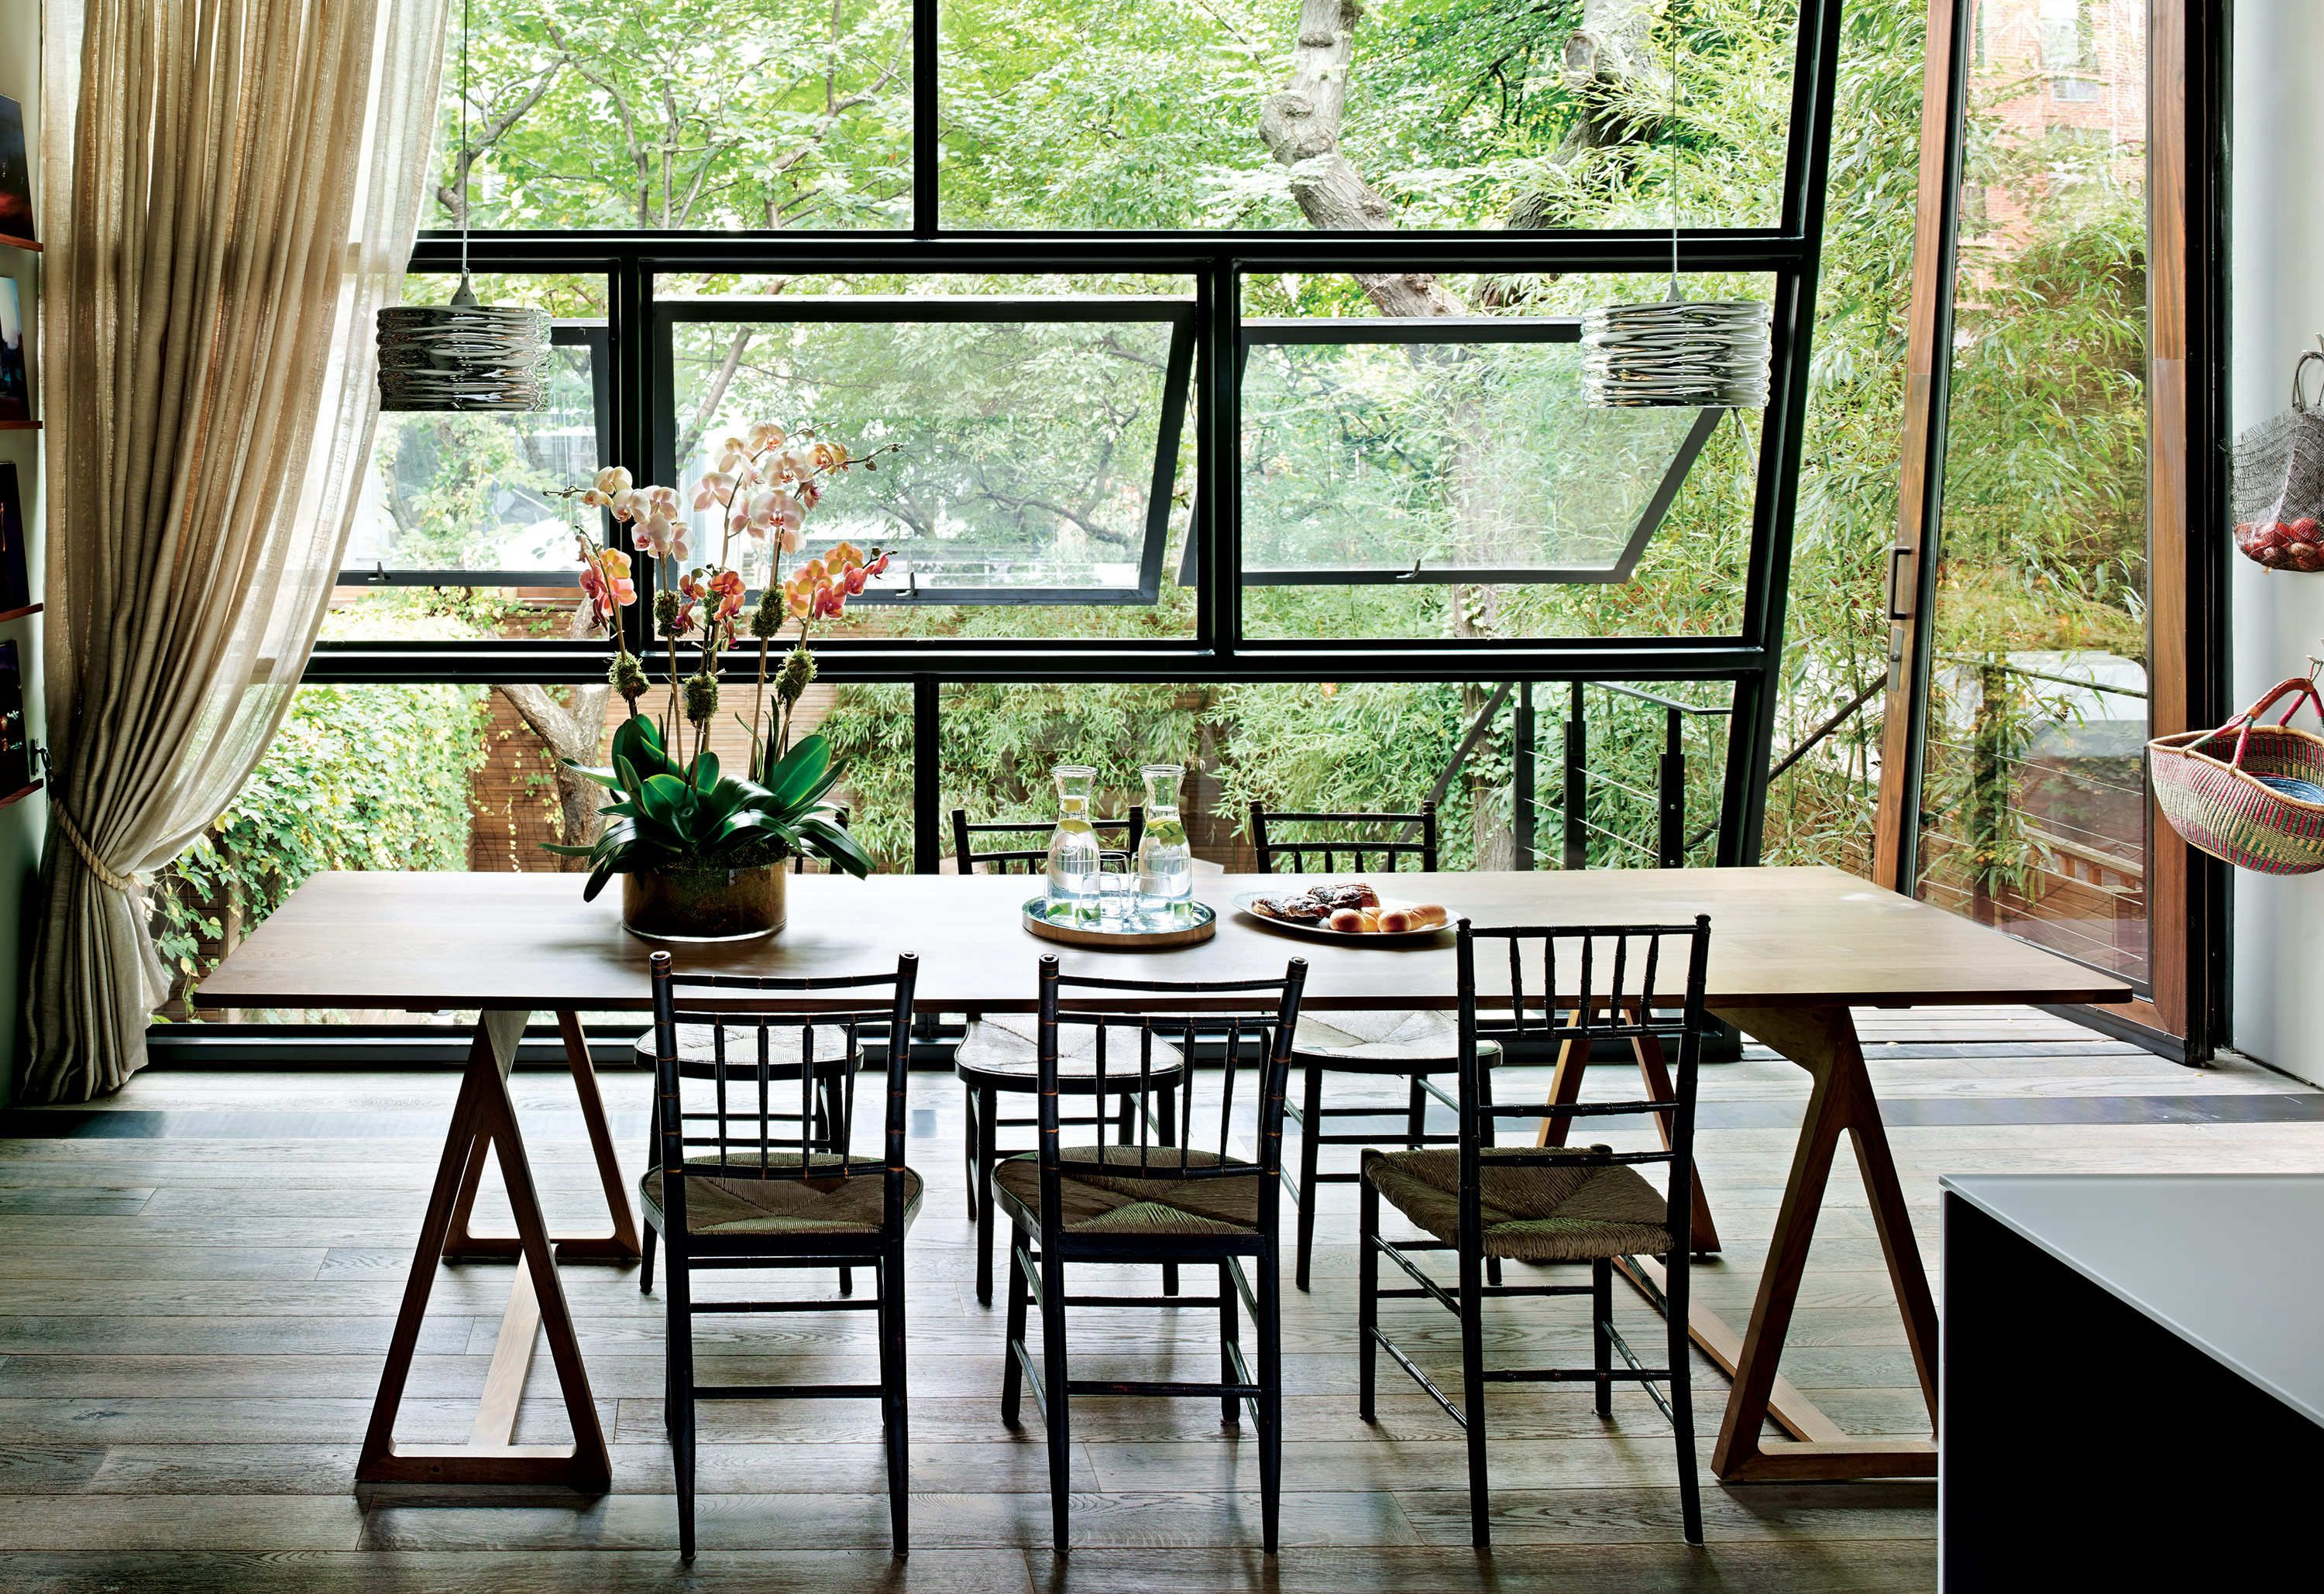 Home interior design windows an oversize trapezoidal door and wall of windows offer a stunning